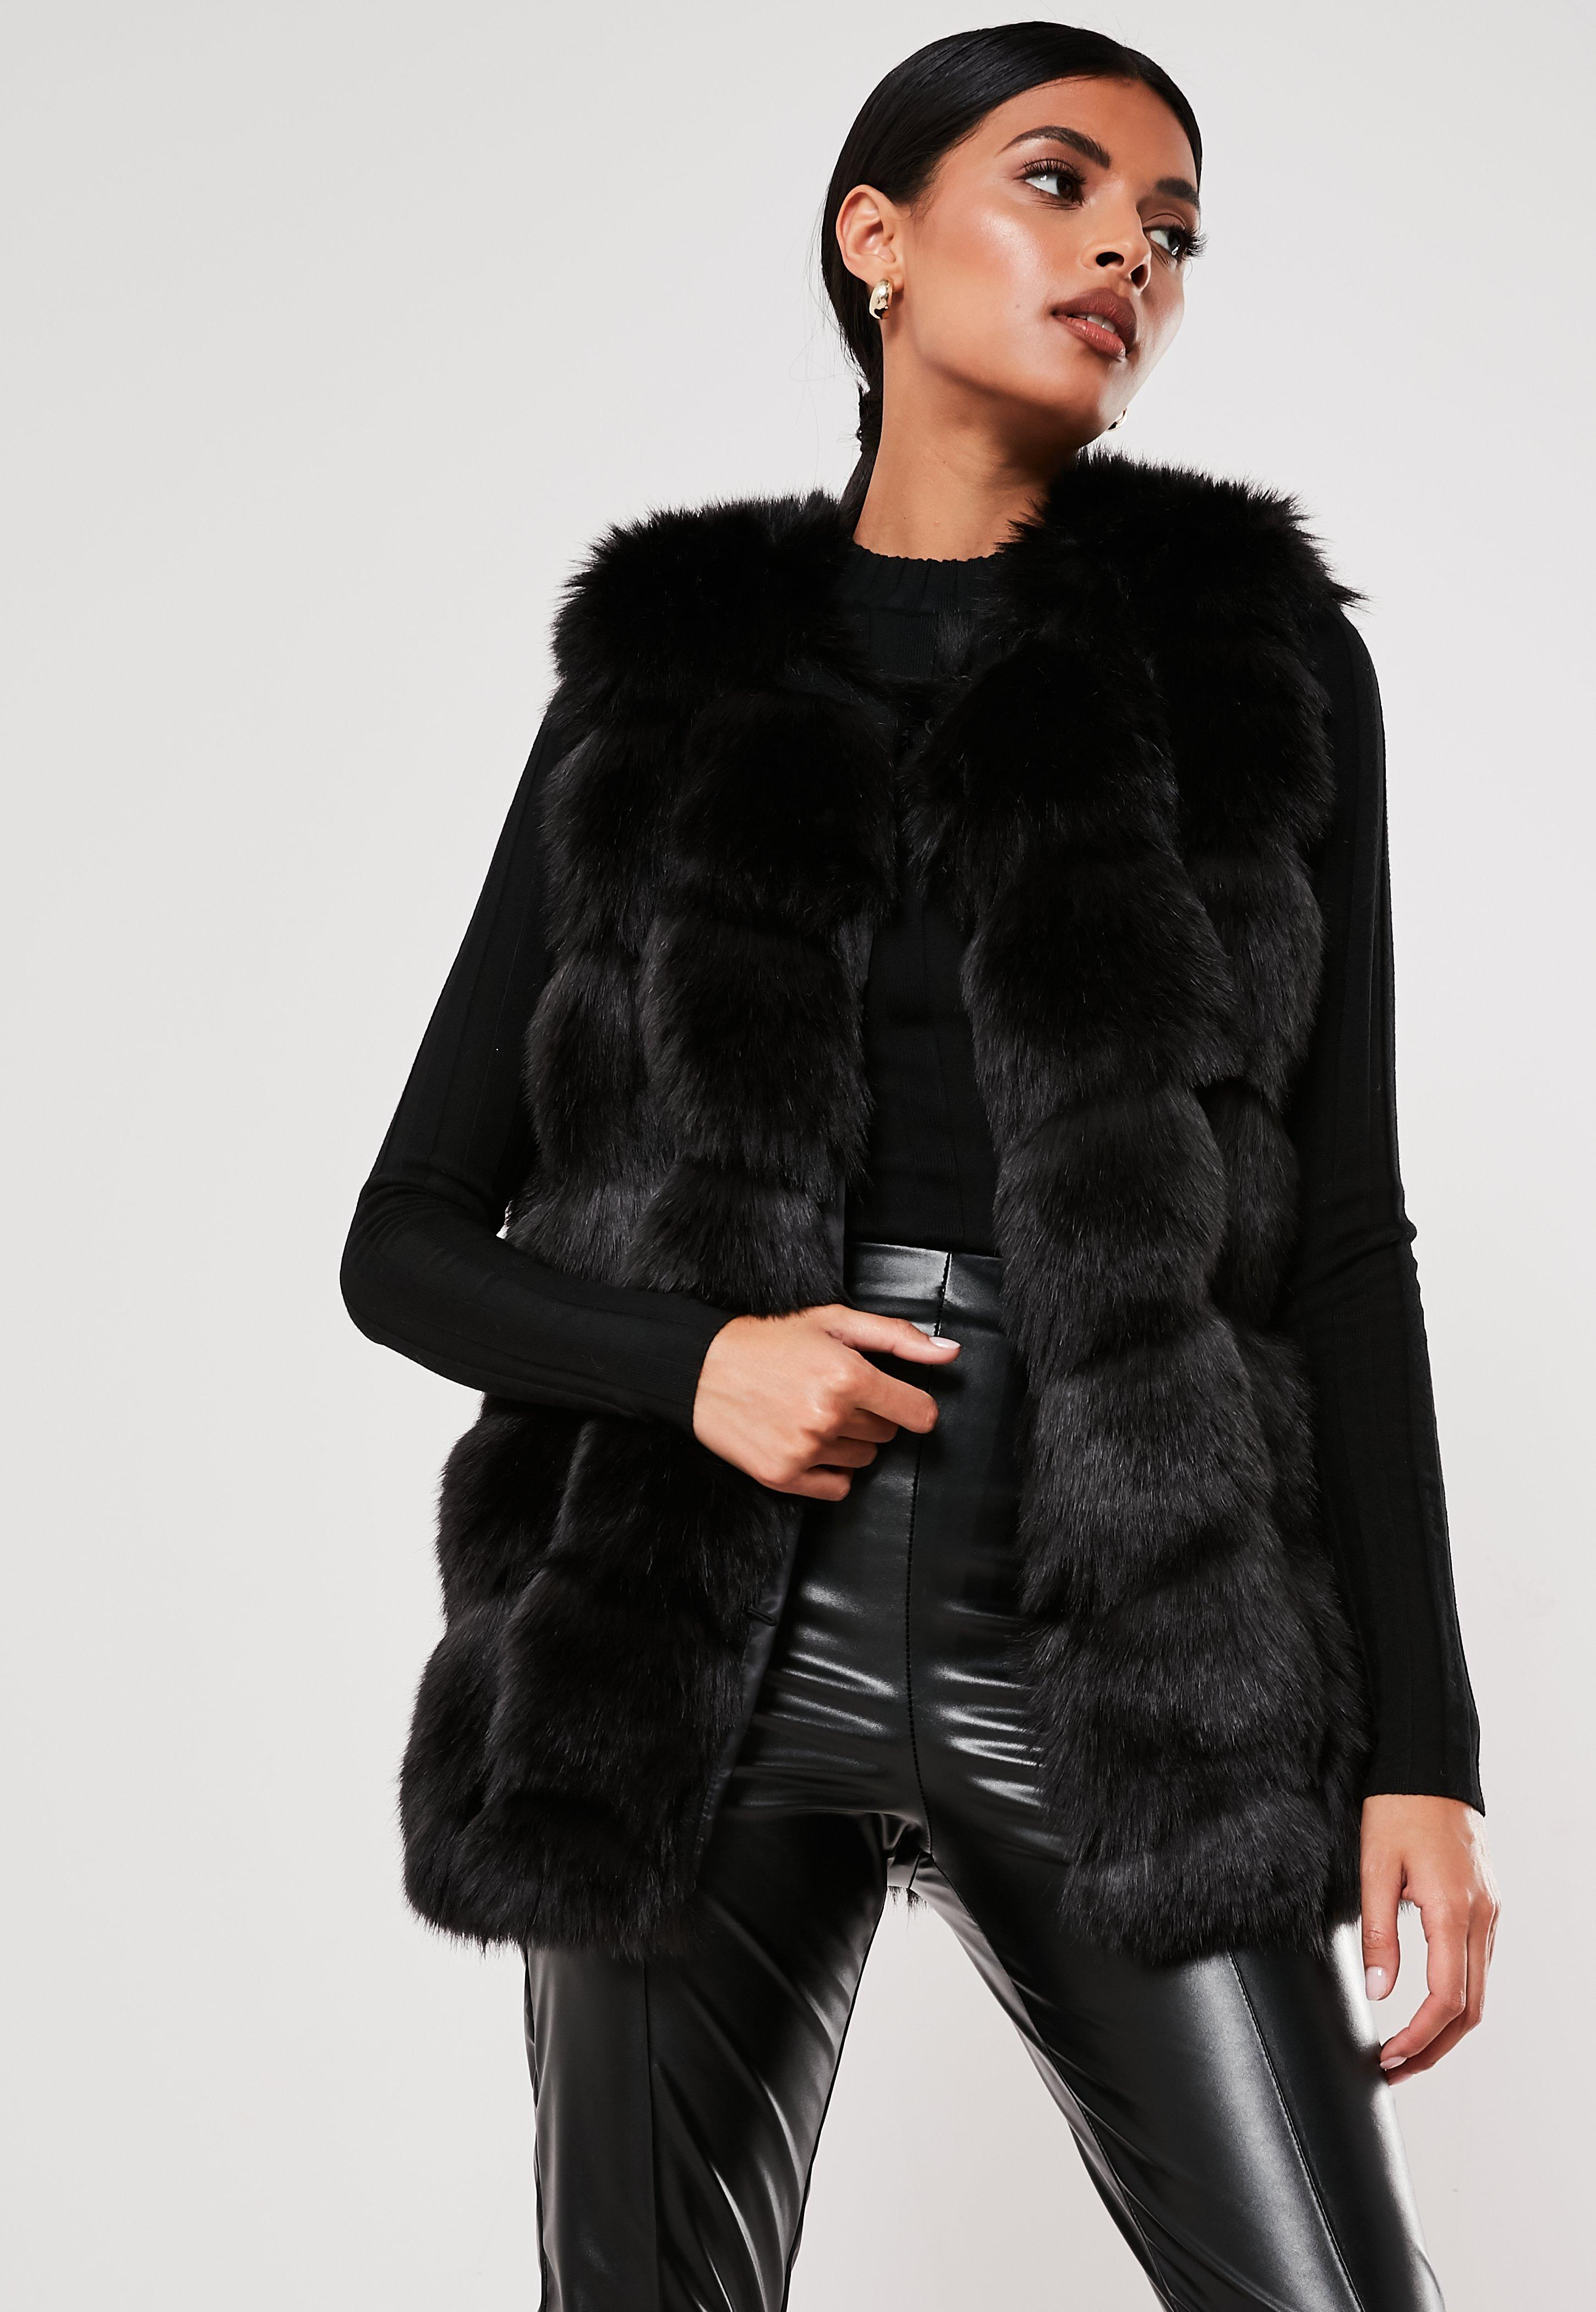 on feet images of reasonable price uk store Black Faux Fur Bubble Gilet | Missguided